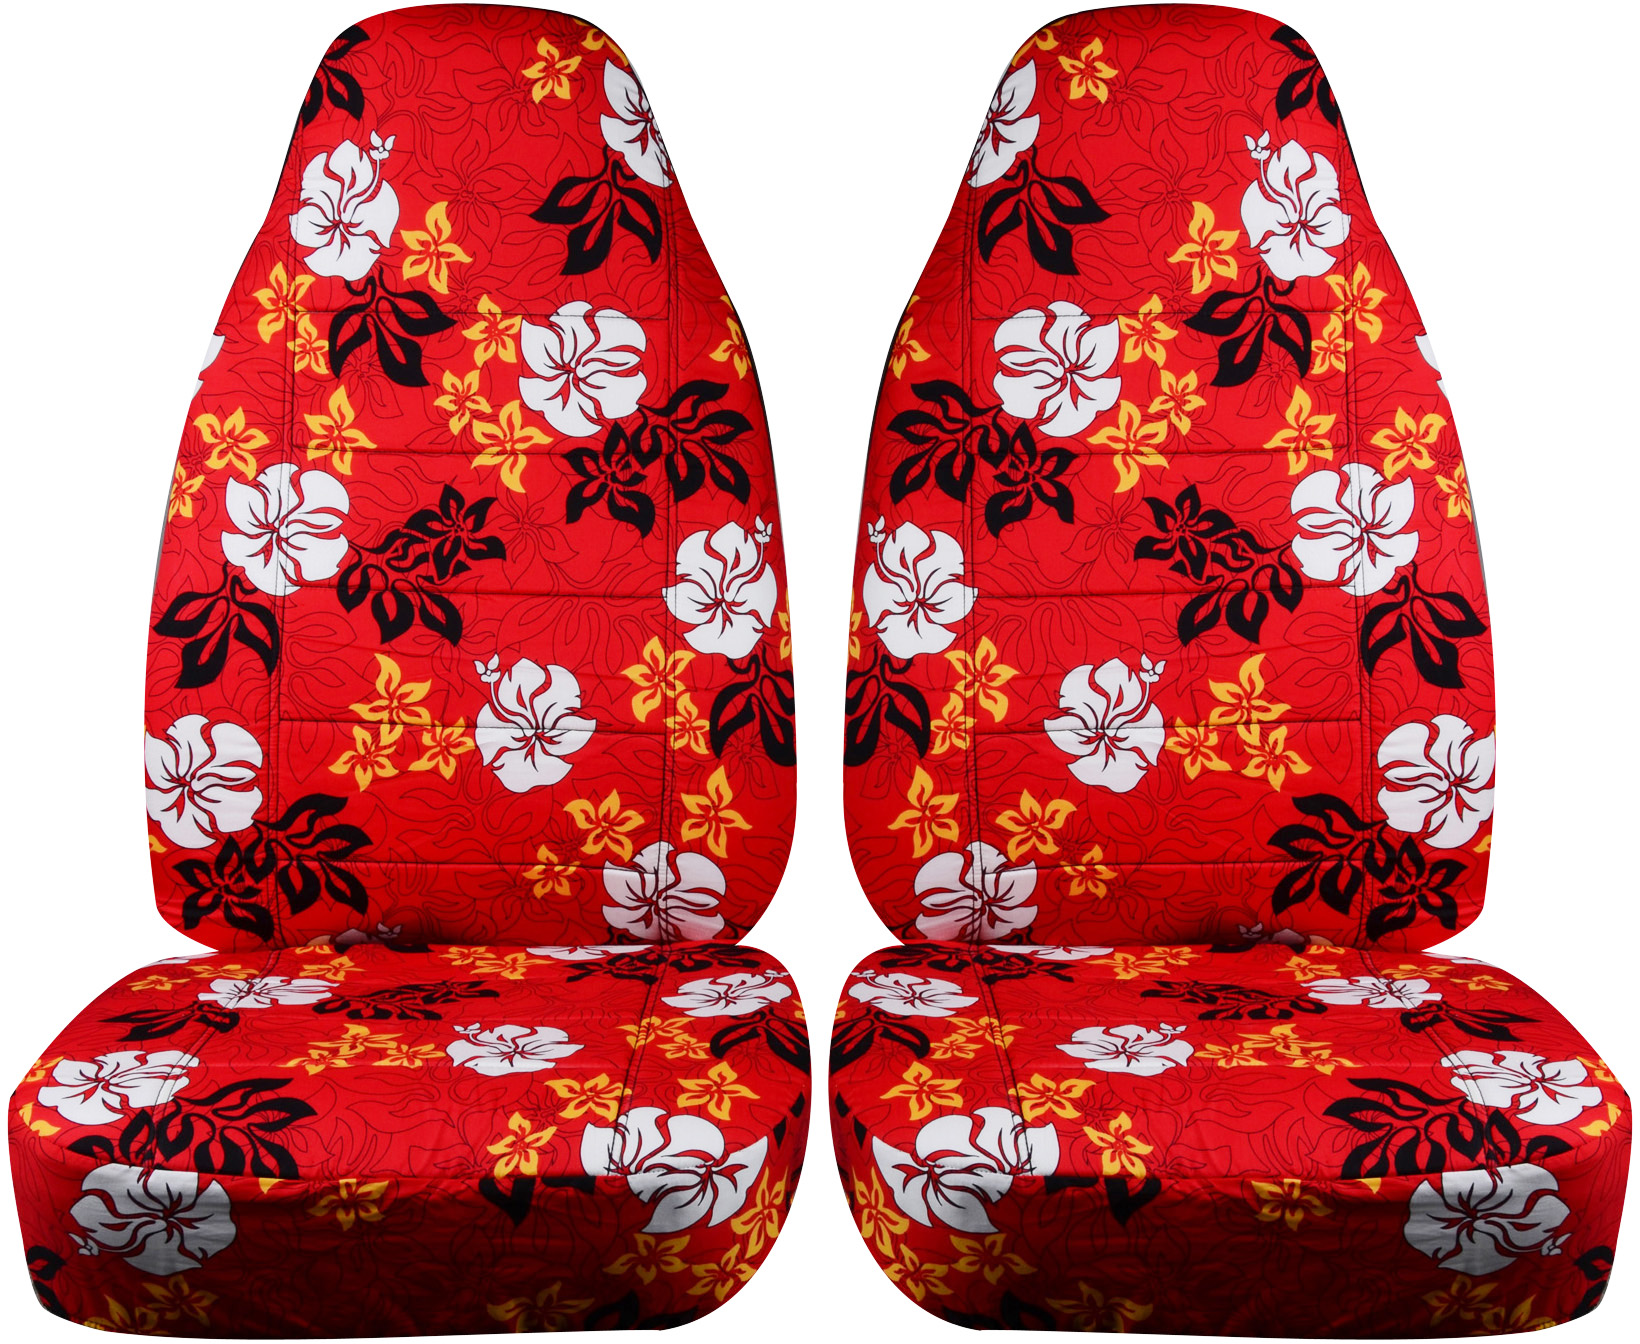 Hawaiian print car seat covers front semi custom blueredyellow red hawaiian car seat covers izmirmasajfo